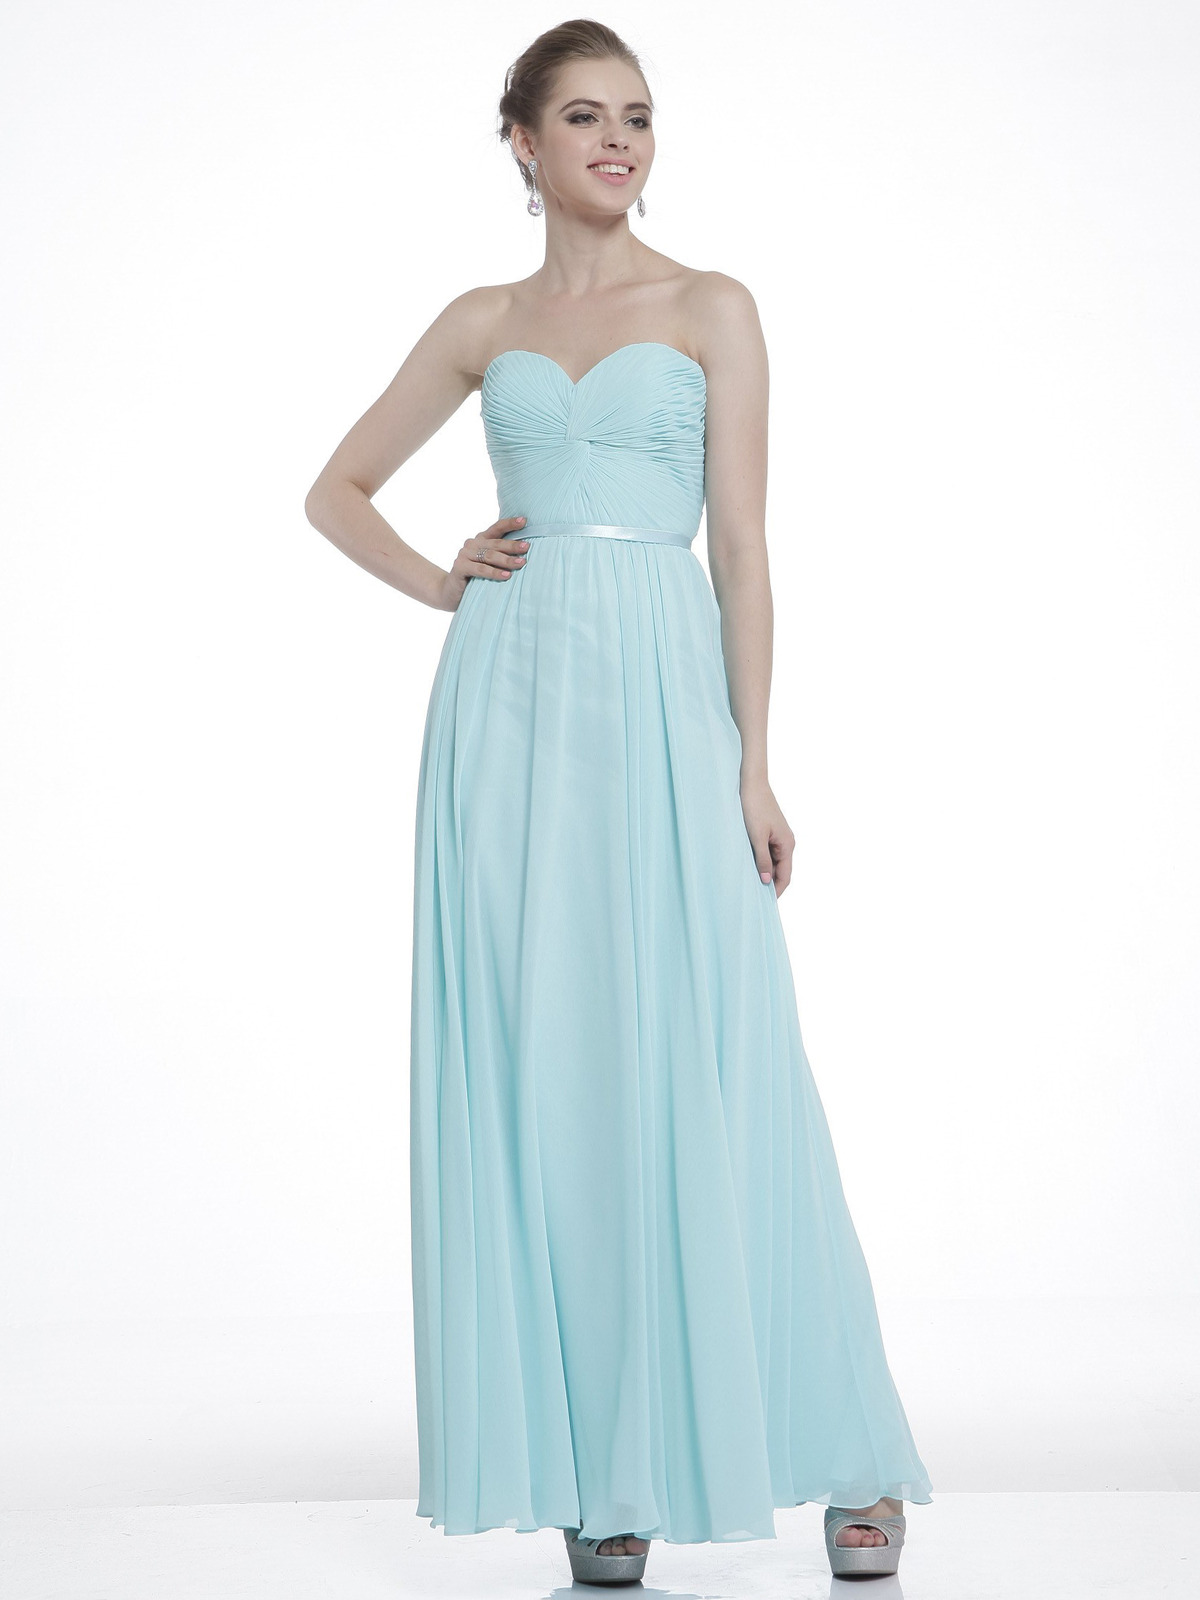 Strapless Sweetheart Prom Dress with Ribbon | Sung Boutique L.A.